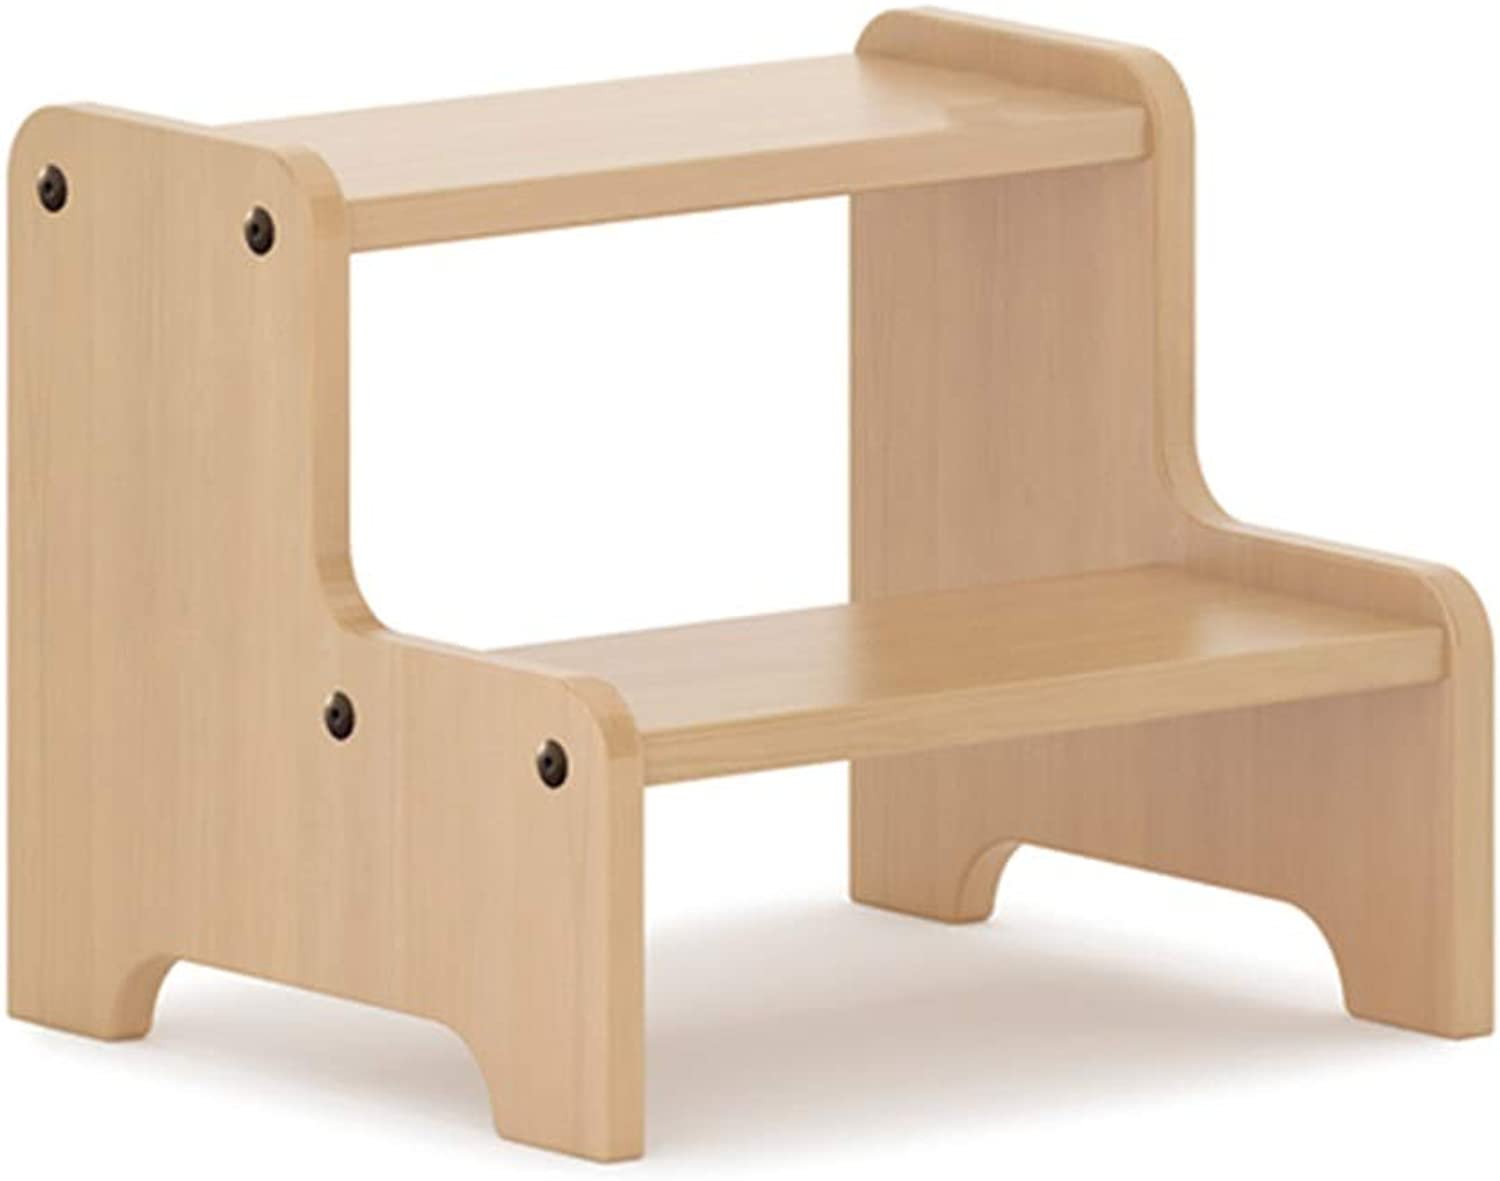 Bookcase Ladders Solid Wood Hand Pad Footstool Pedal Small Bench Home Solid Wood shoes Bench Two Step Bench Climbing Step Ladder Indoor Dual-use Small Horse (color   Beige, Size   30  34  28cm)